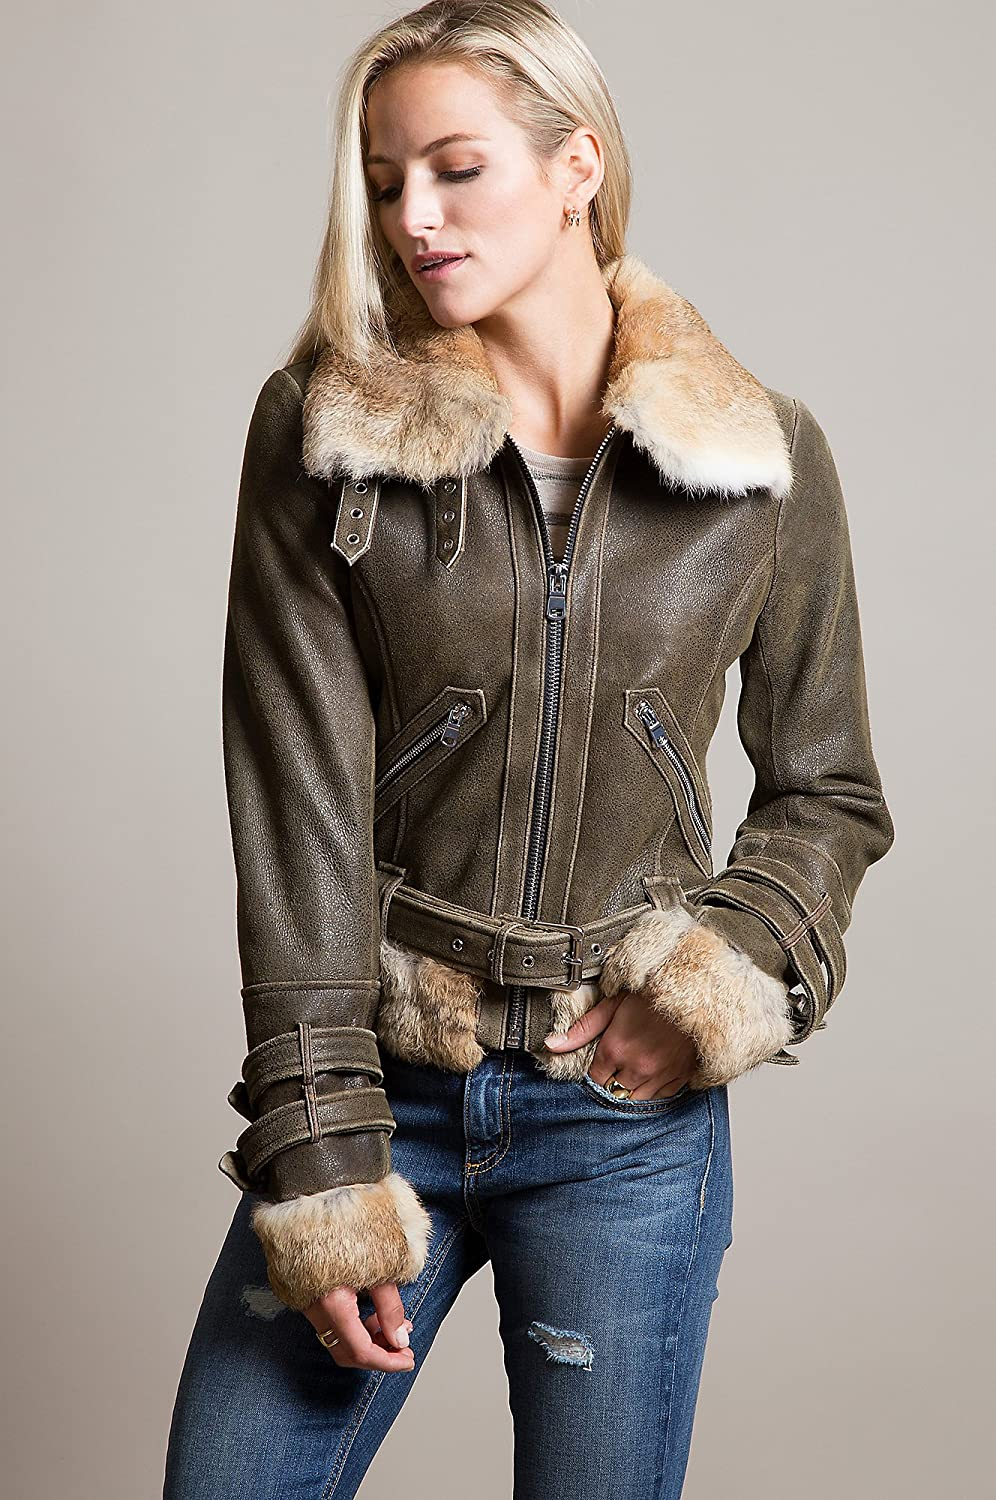 1930s Style Coats, Jackets | Art Deco Outerwear Overland Sheepskin Co Zoe Lambskin Leather Bomber Jacket Rabbit Fur Trim $995.00 AT vintagedancer.com